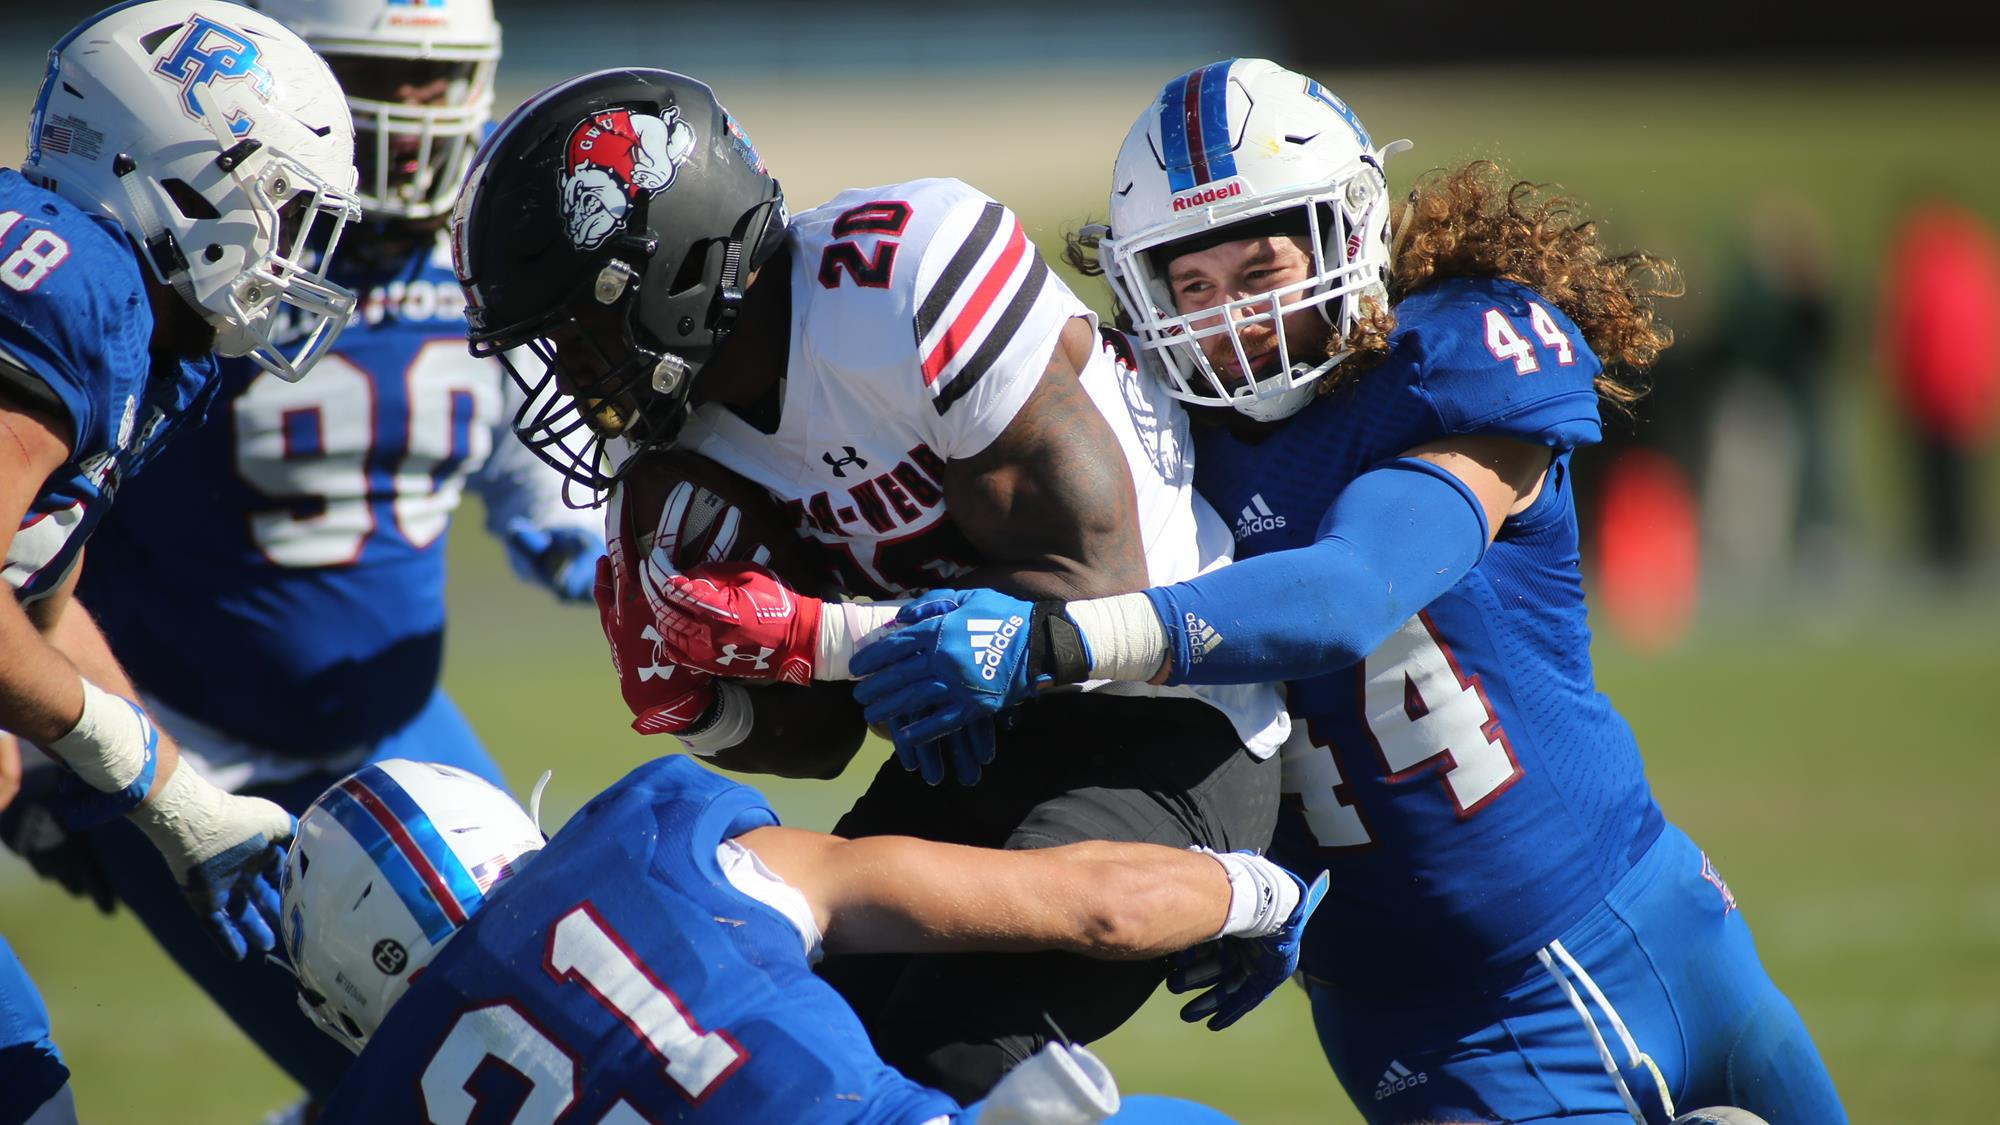 Colby Campbell - 2020 - Football - Presbyterian College